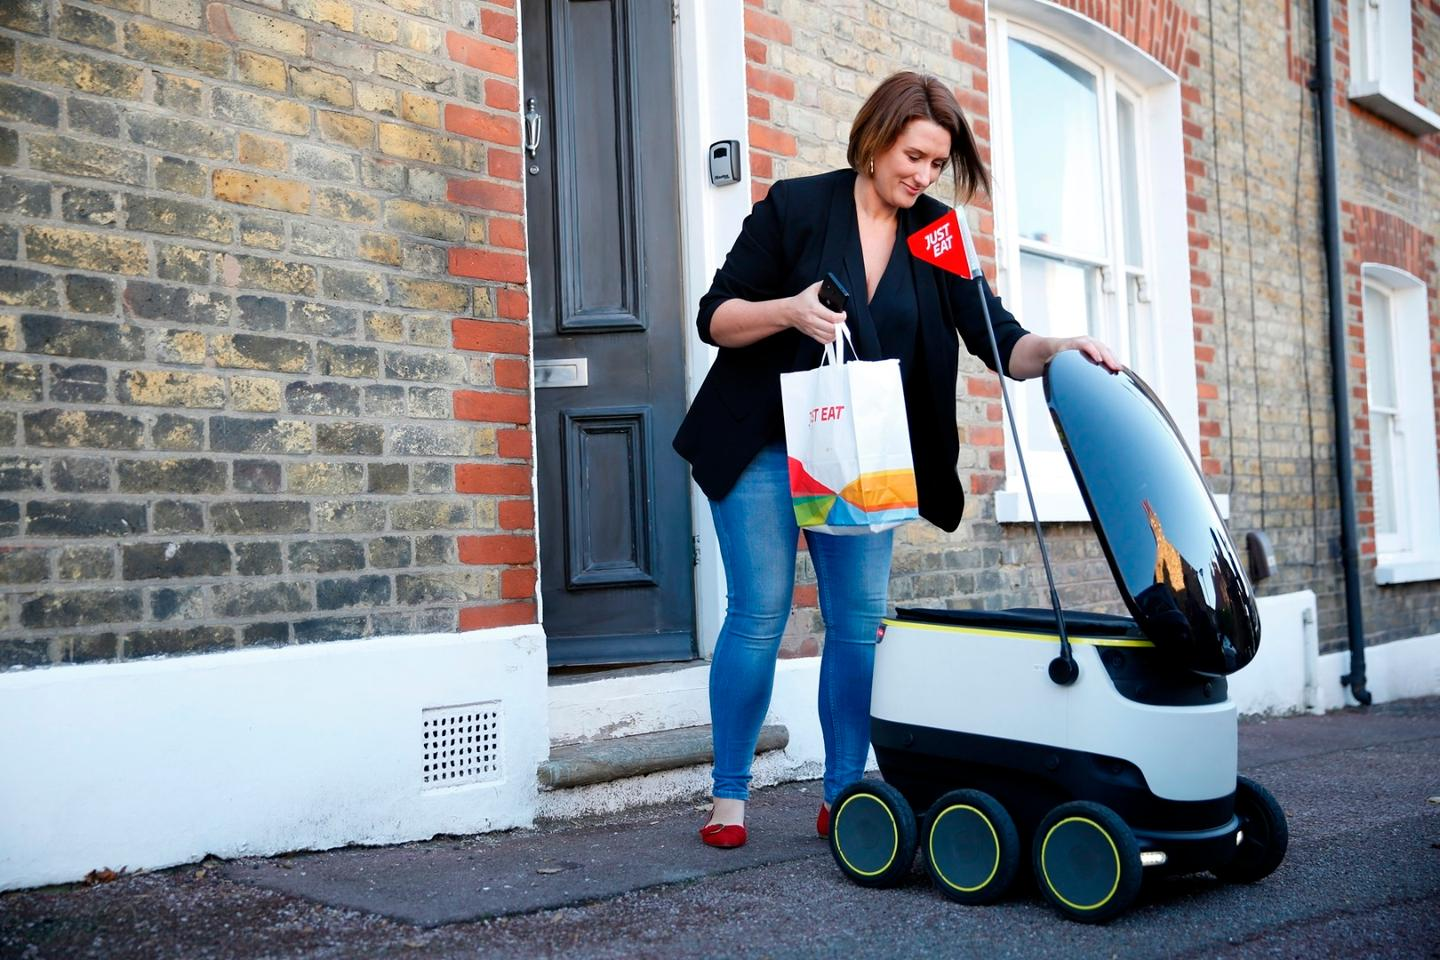 The Just Eat customer who received the robot-deliveredorder was sent a unique link for accessing the cargo hold on her phone